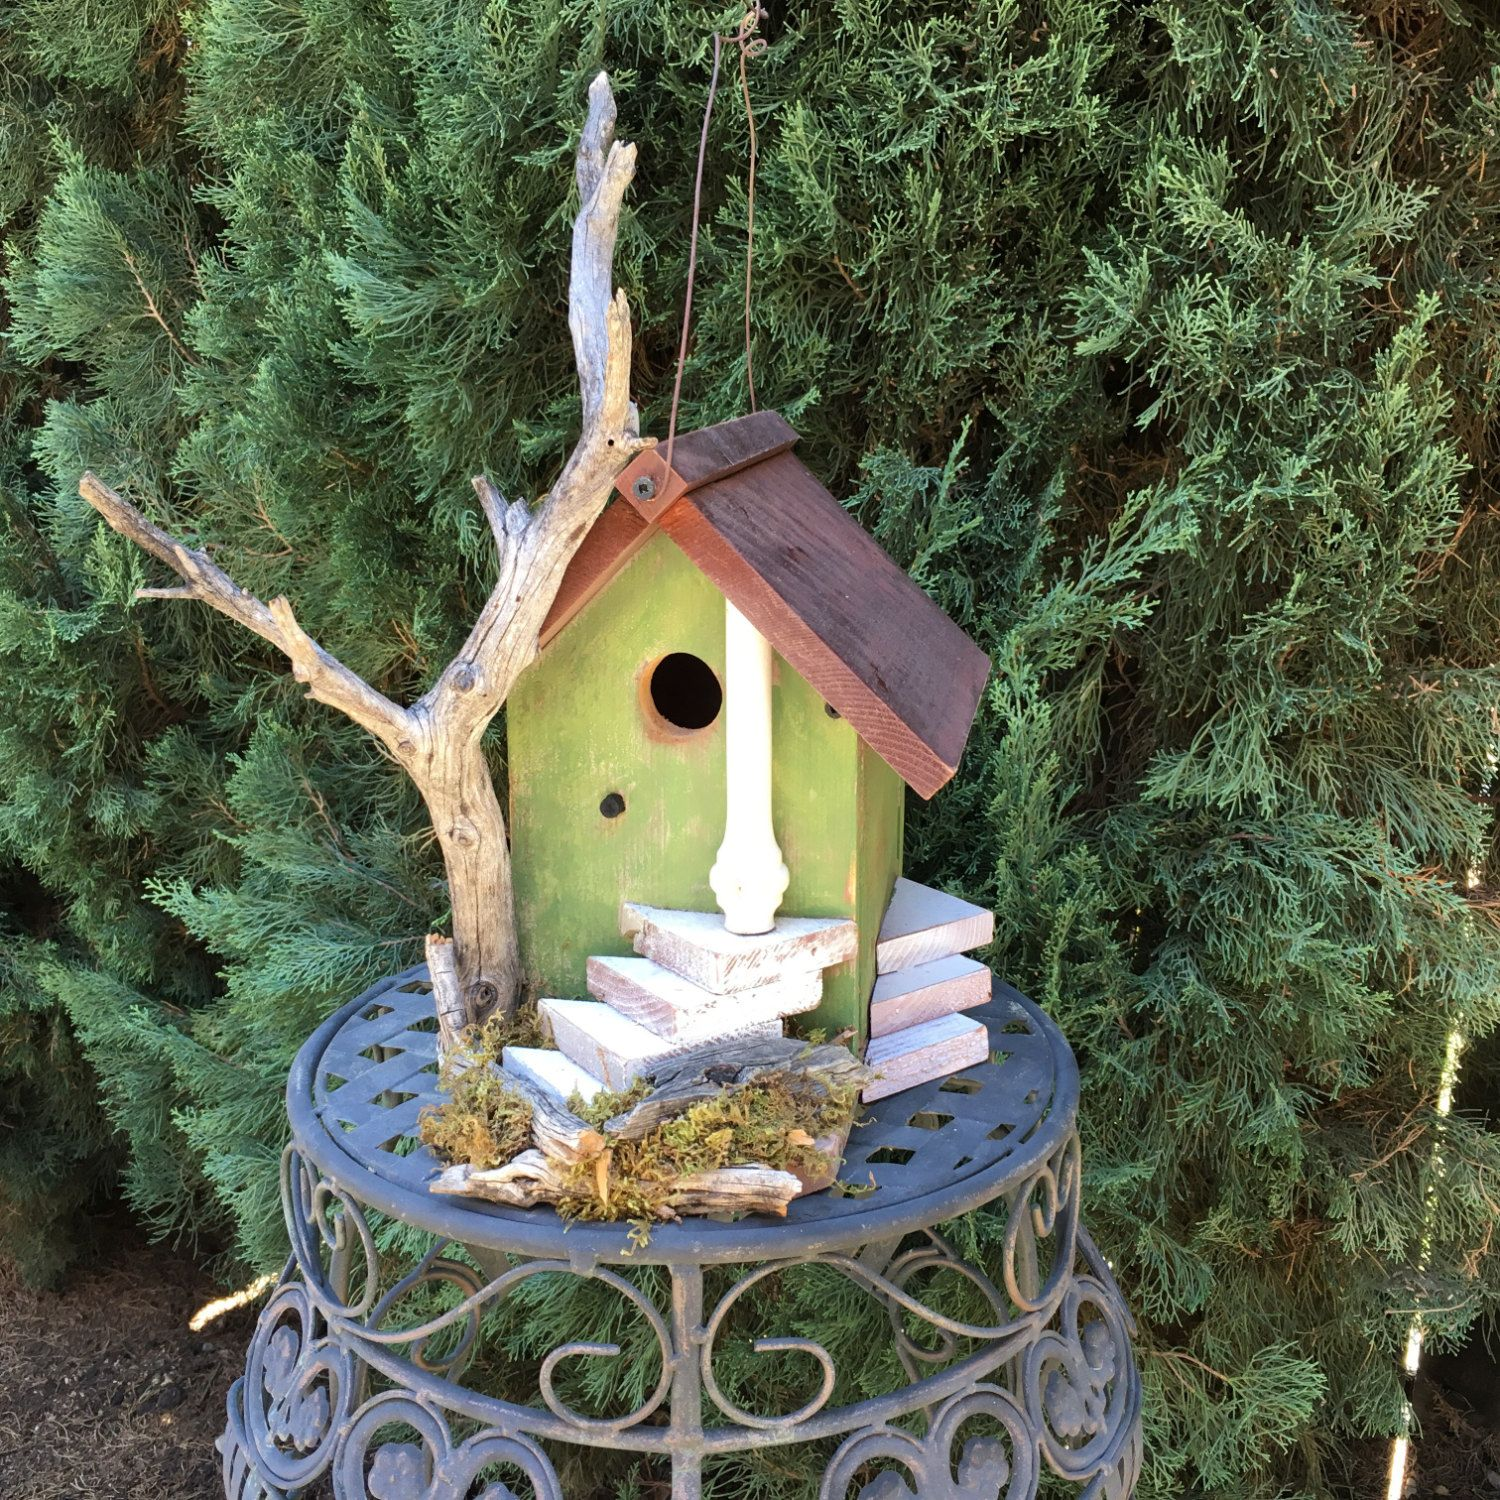 Rustic Wood Birdhouse Functional Unique With Natural Driftwood Bird